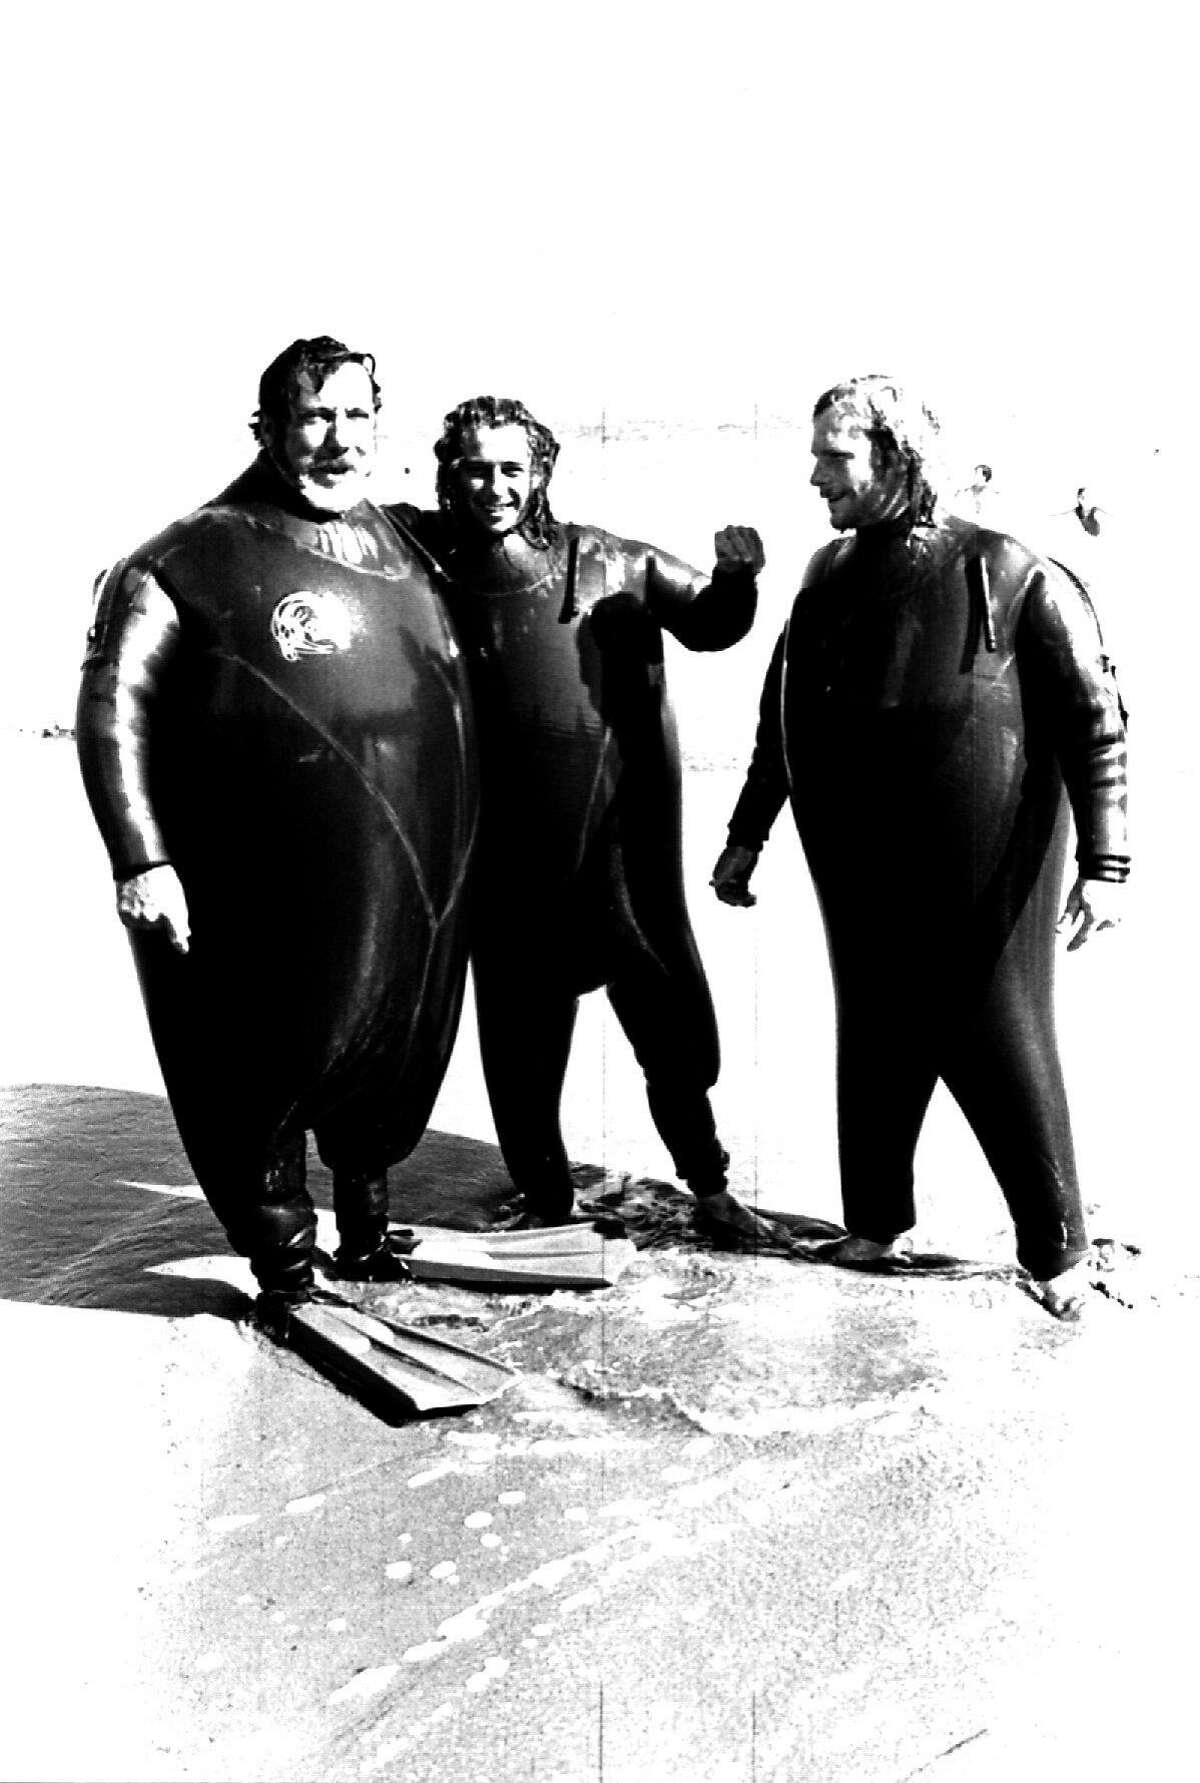 Wetsuit inventor Jack O'Neill